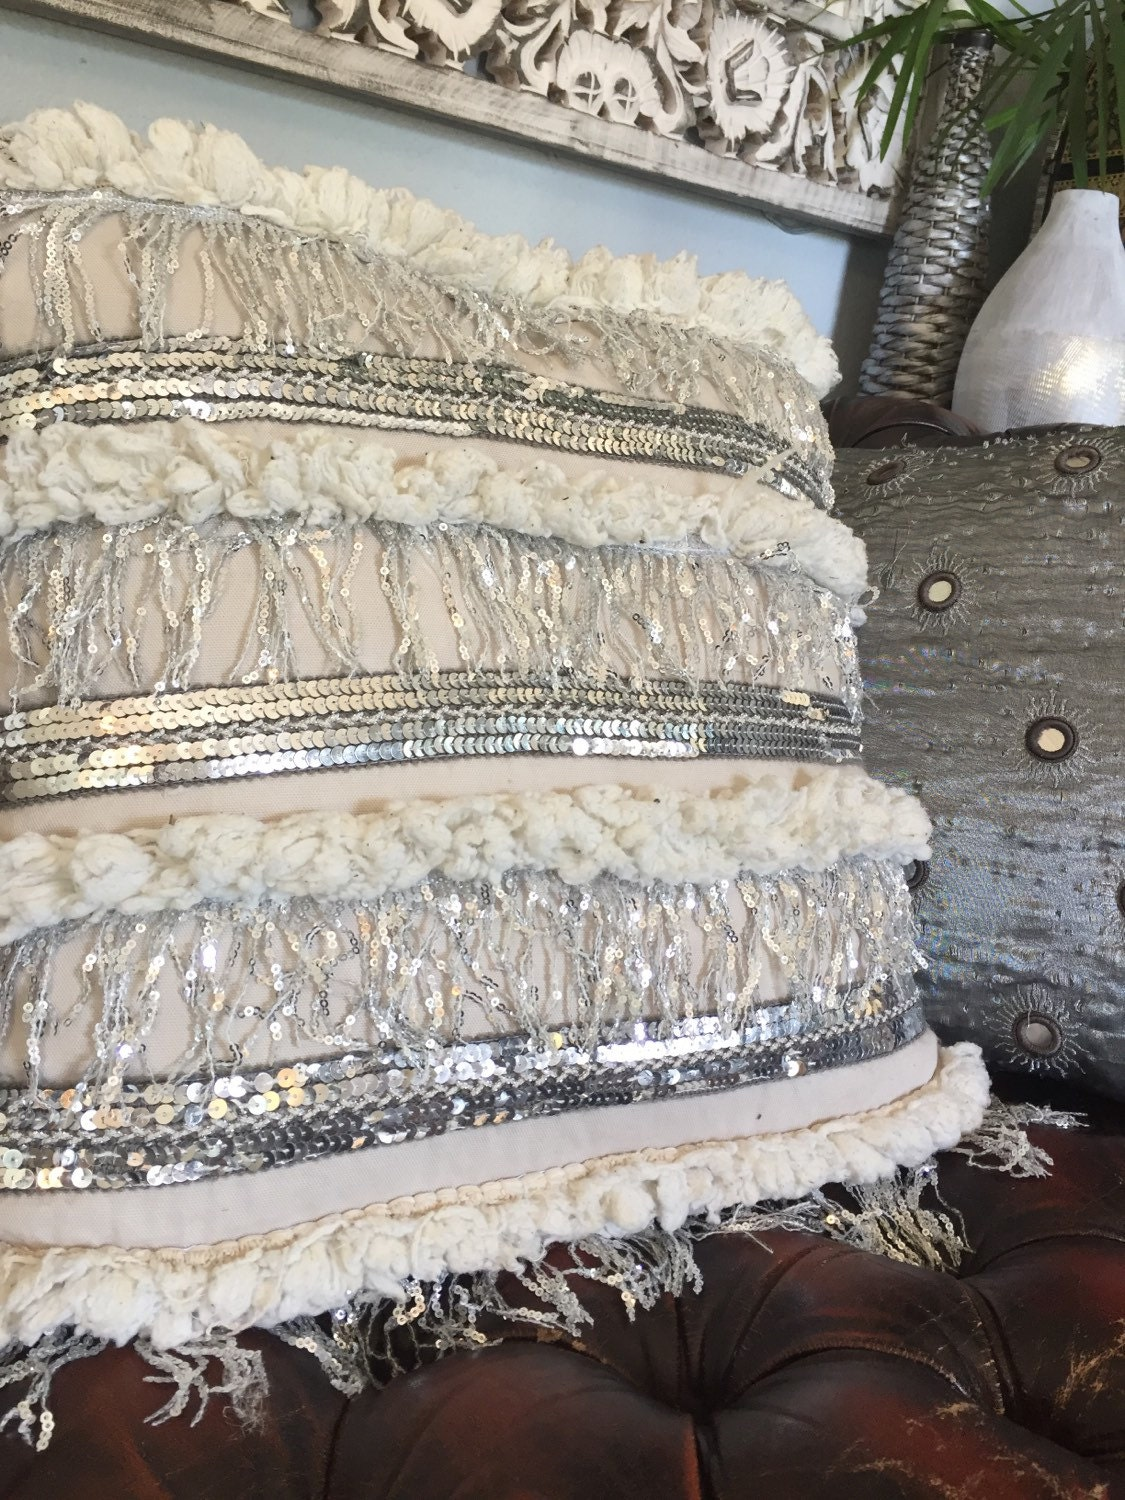 marrakech morrocan wedding blanket pillow handira white silver sequin throw pillow cushion cover indian embroidered beaded